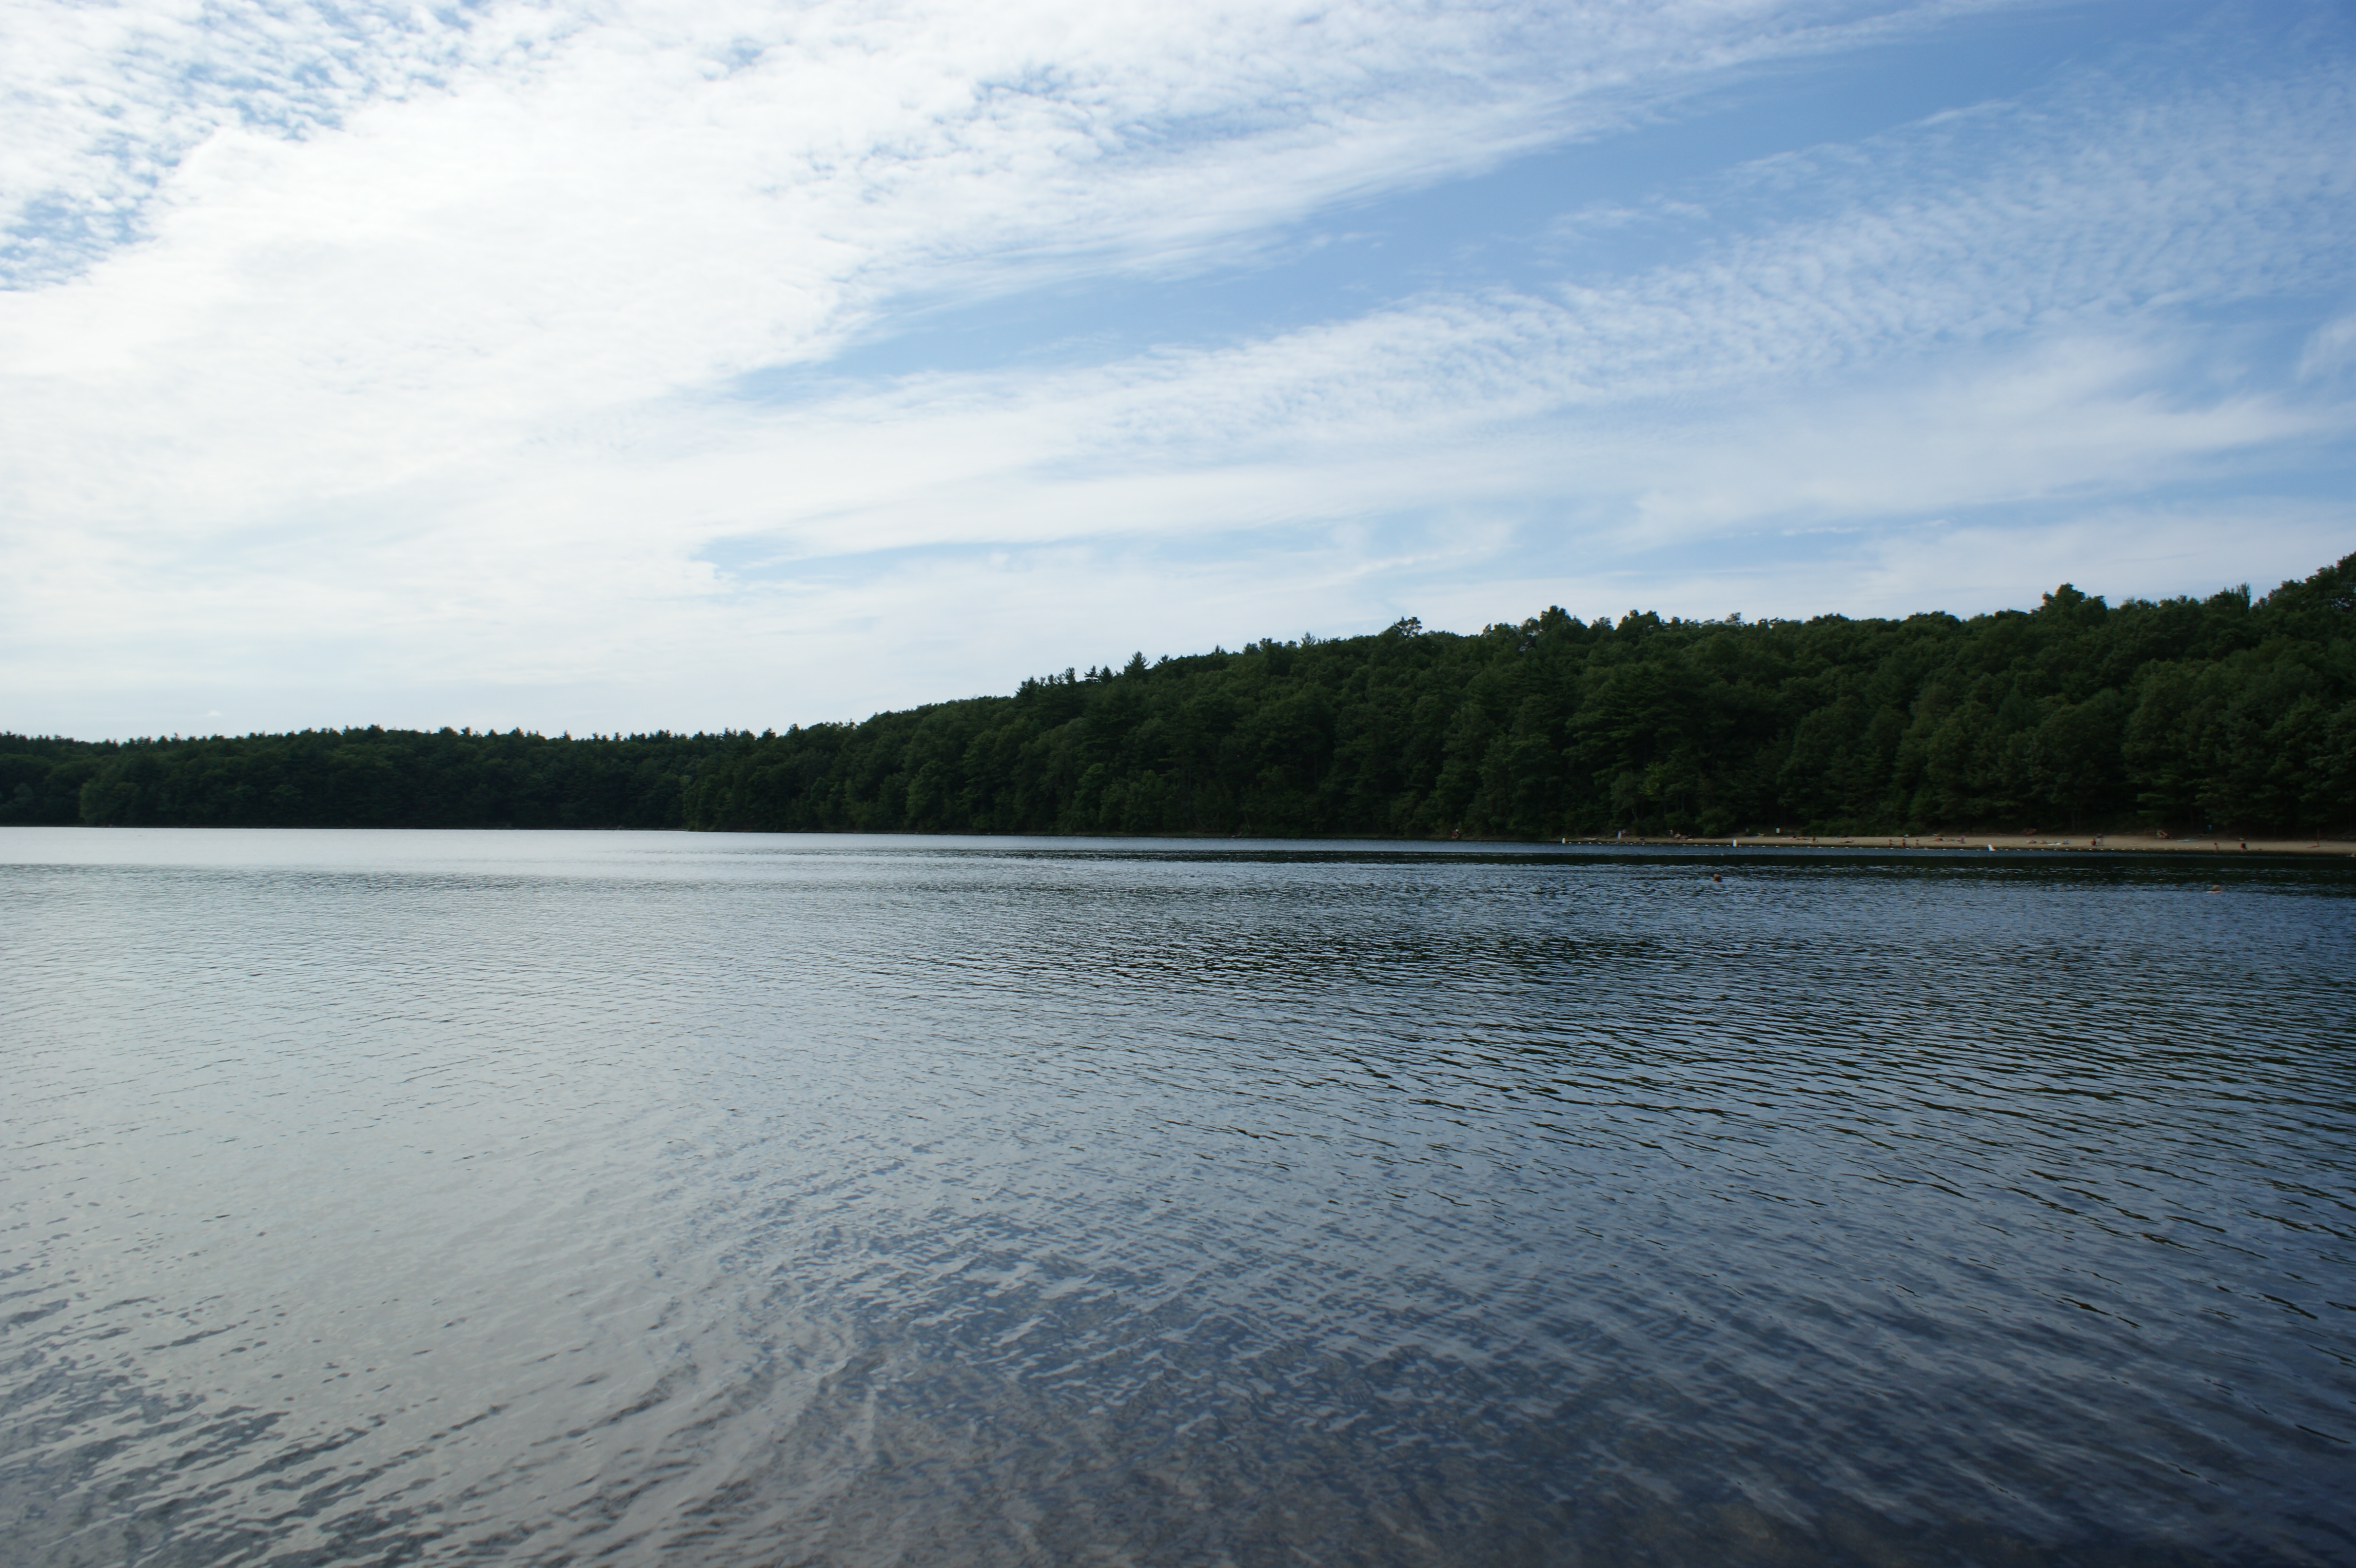 photo essay a stop at walden pond on thoreau s birthday lettershead and you can look at this